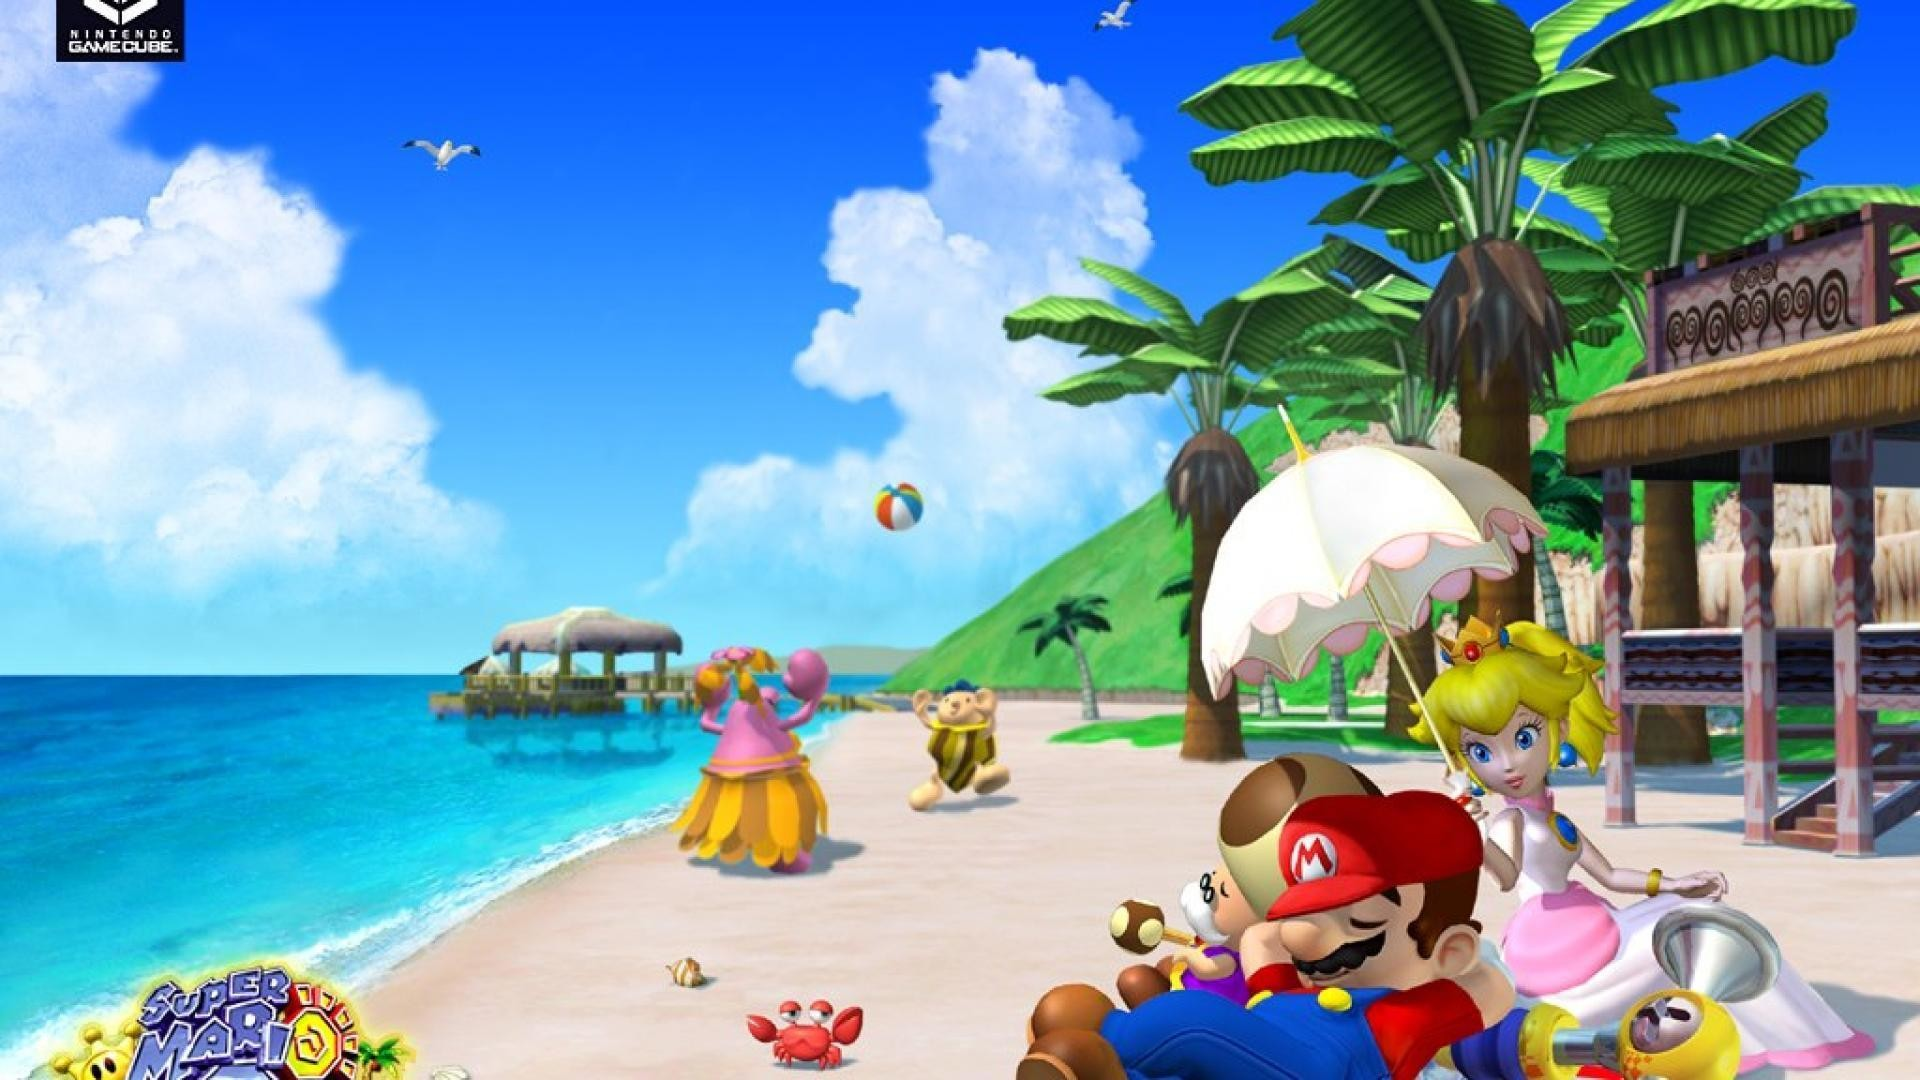 Images For > Mario Wallpaper Hd